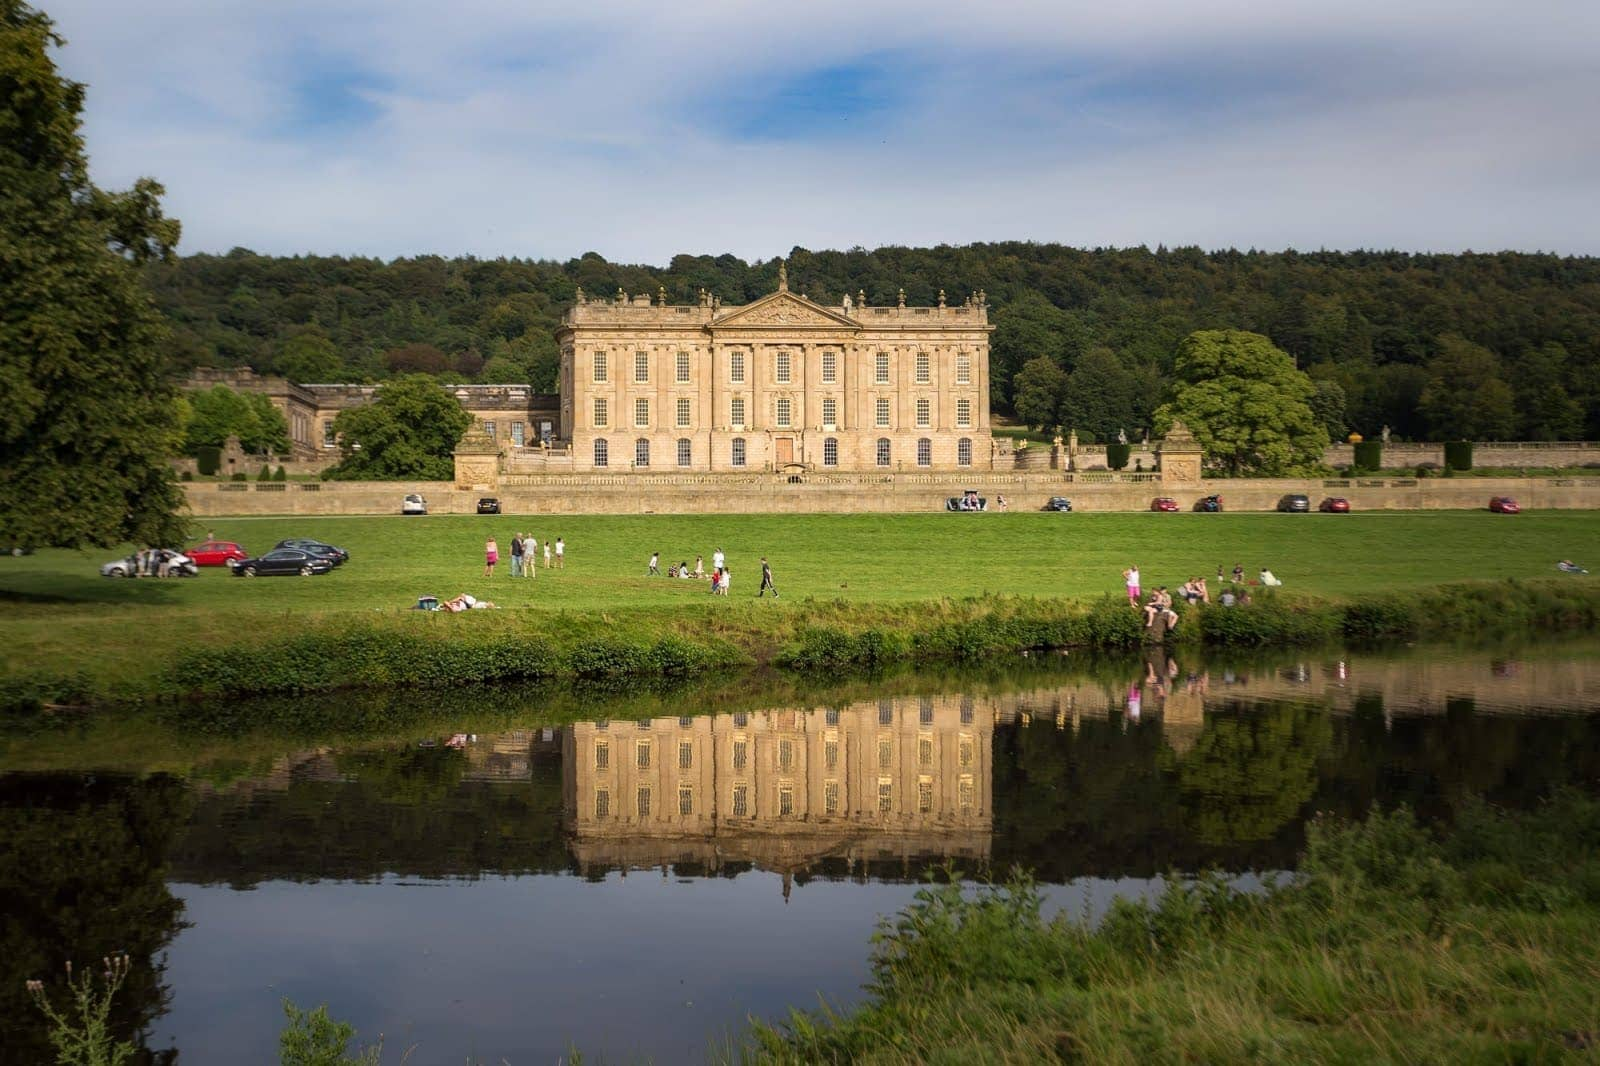 Stately Homes in England - Chatsworth House by Laurence Norah